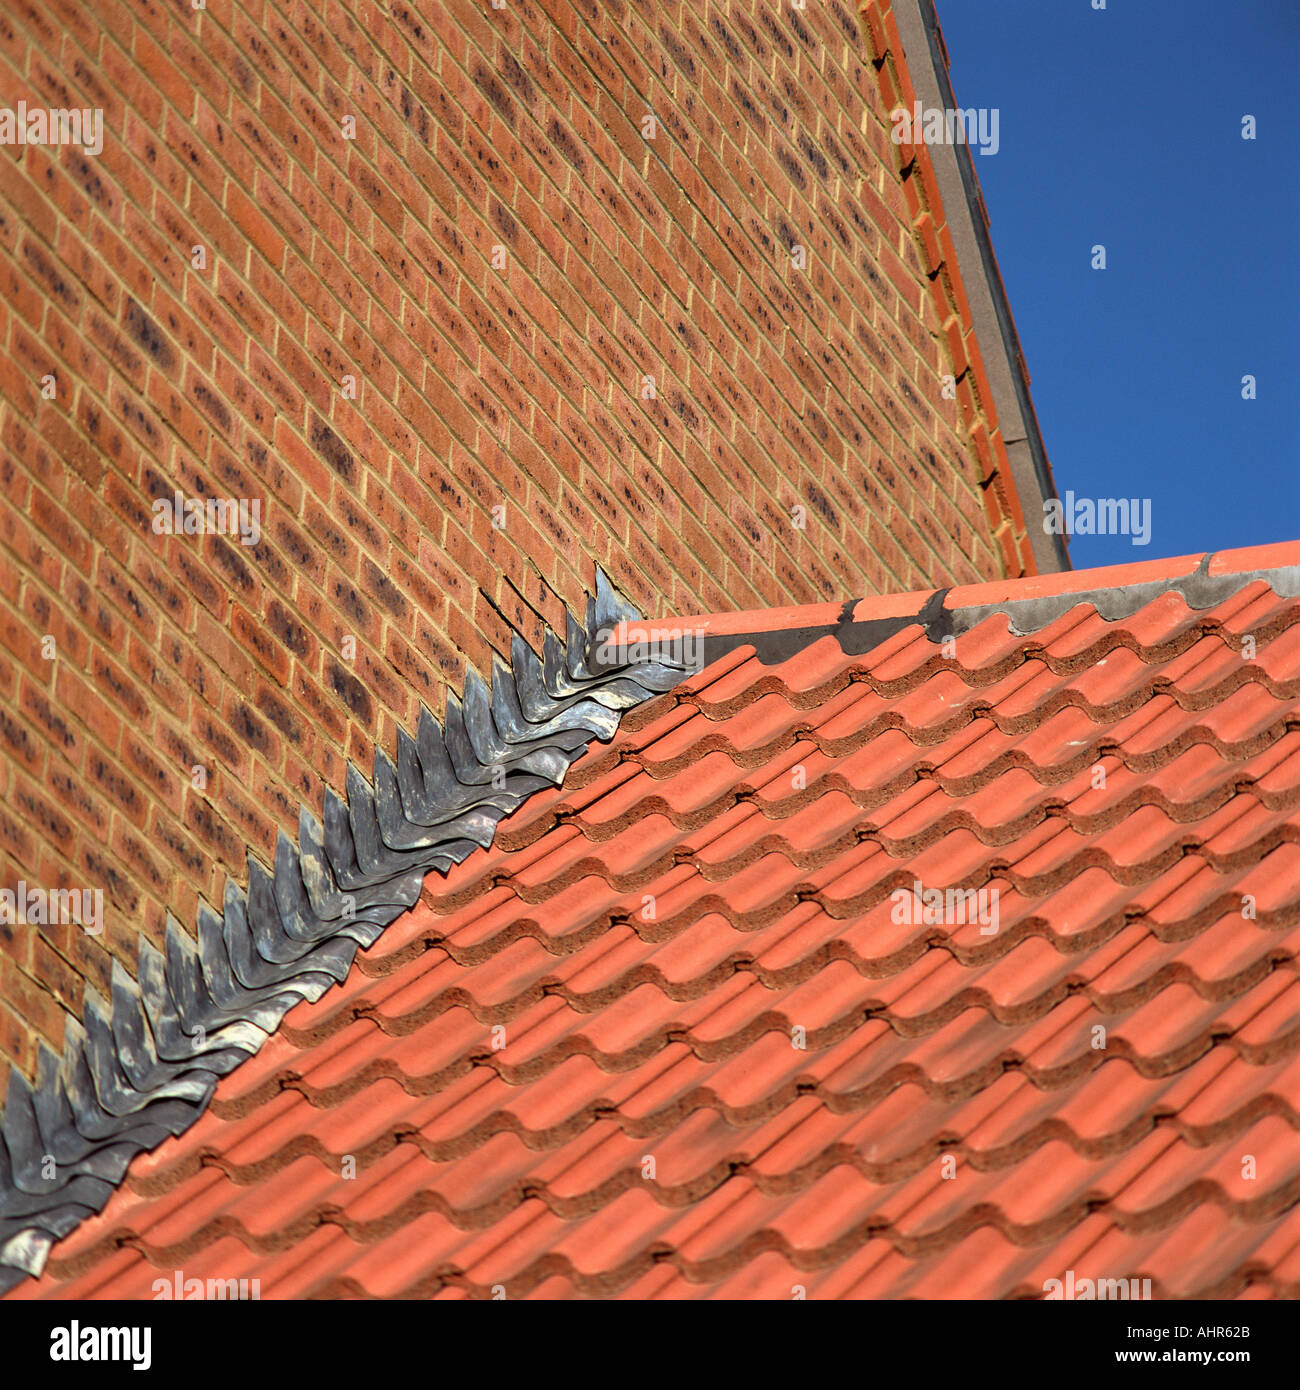 Brick wall and tiled roof - Stock Image